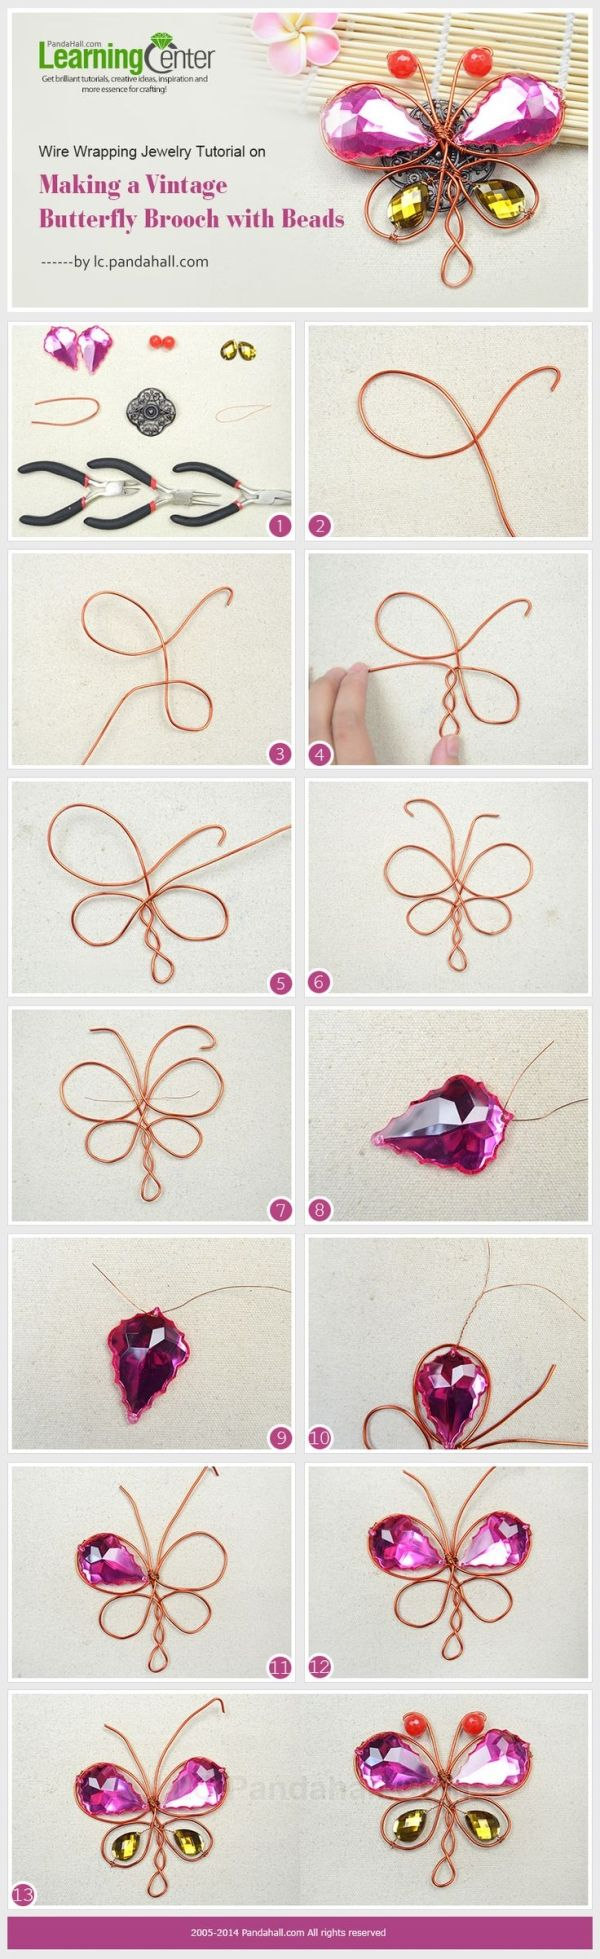 Wire Wrapping Jewelry Tutorial on Making a Vintage Butterfly Brooch with Beads by Jersica